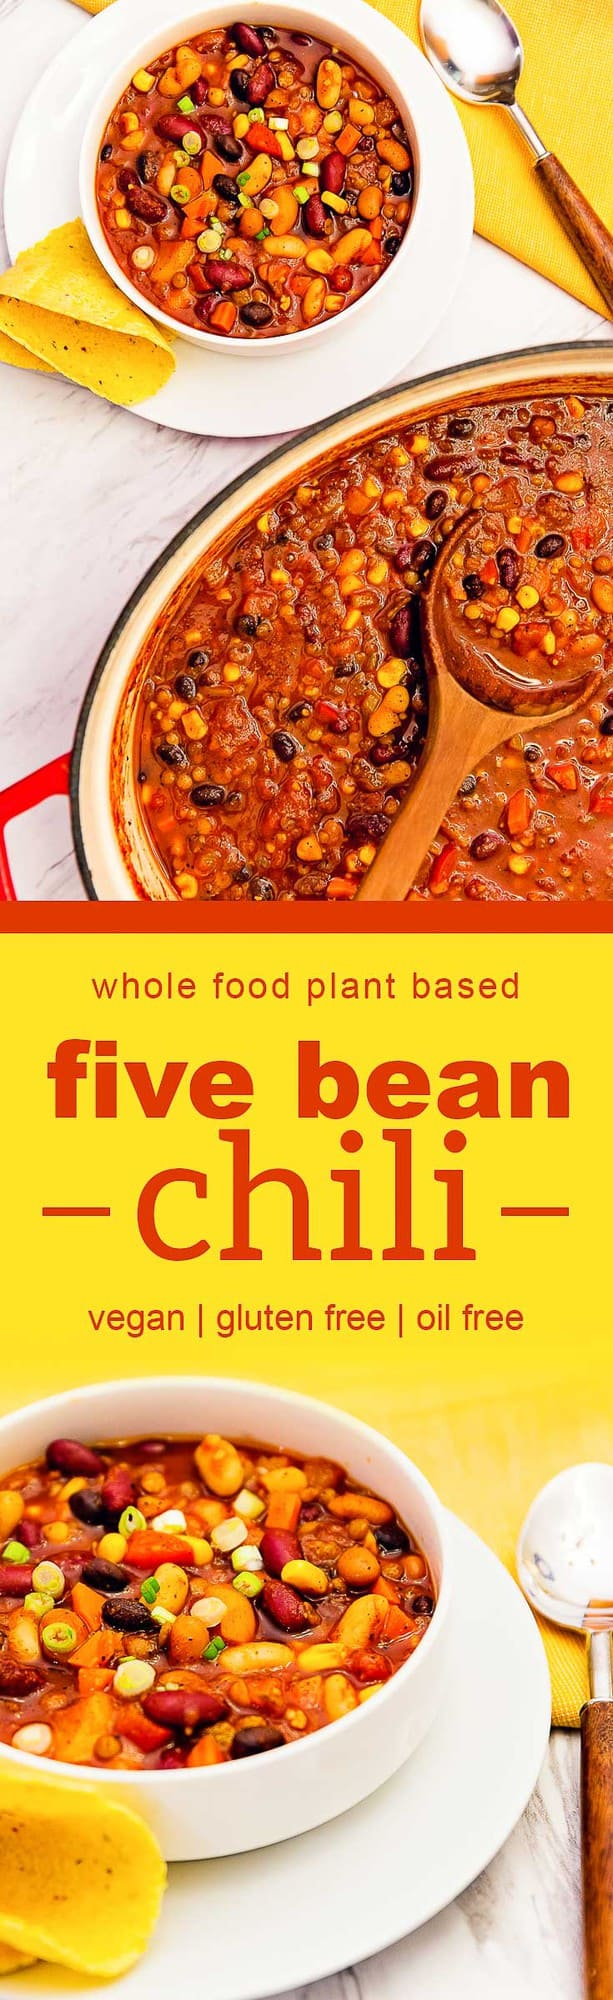 five bean chili, bean chili, chili, whole food plant based, plant based, vegan, vegan chili, vegetarian, vegetarian chili, whole food plant based chili, pinto beans, black beans, lentils, white beans, great white northern beans, cannellini, gluten free, oil free, no oil, no refined sugar, refined sugar free, soup, soup, stew, easy soup, easy, healthy